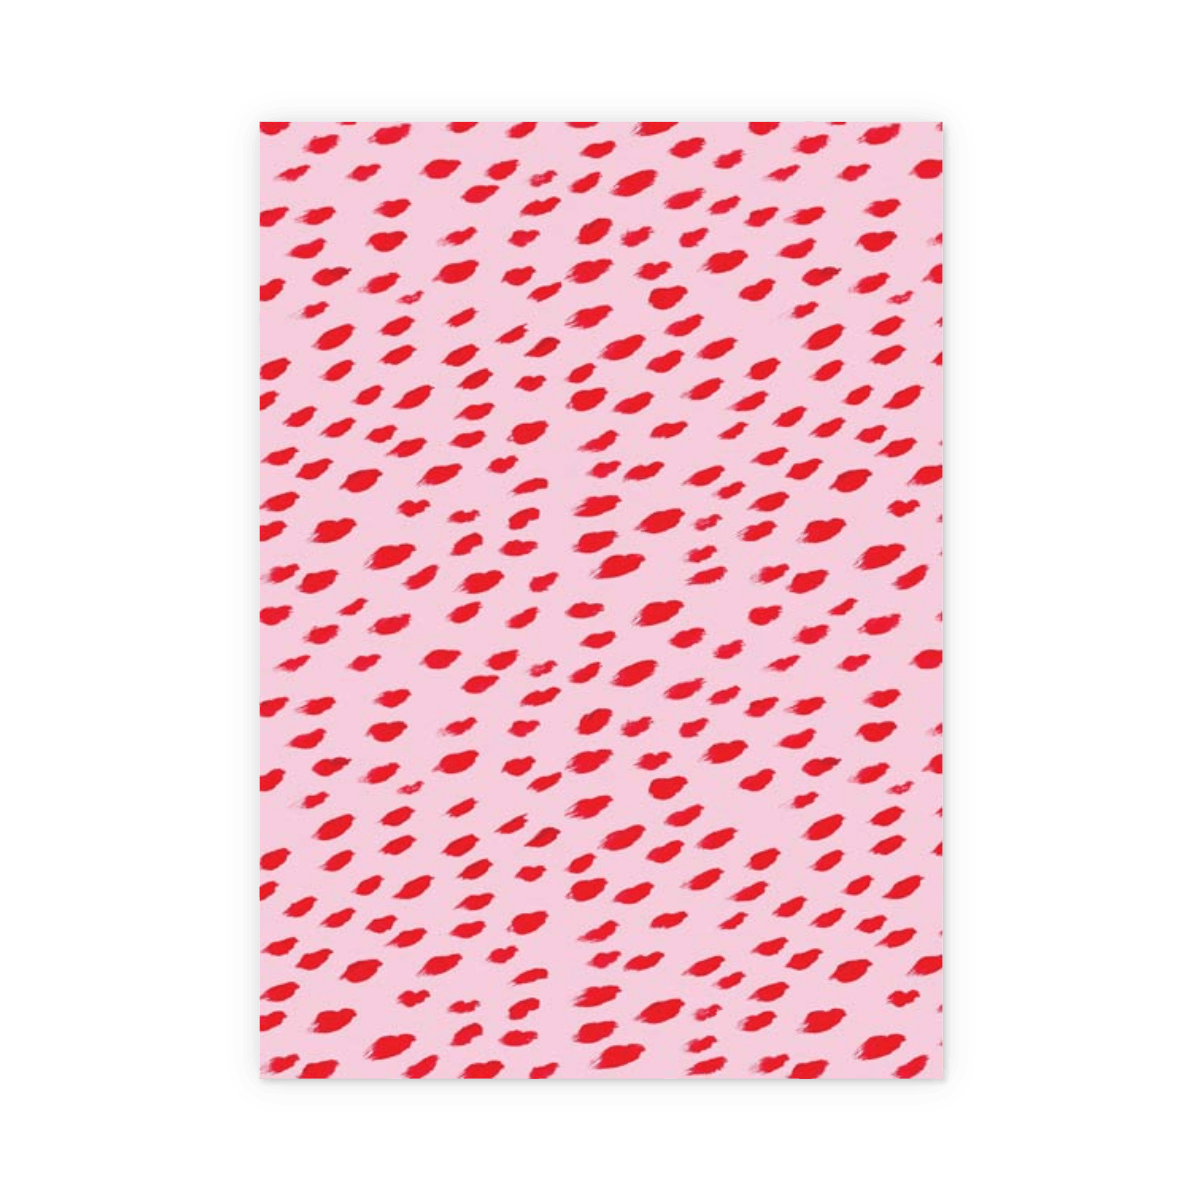 Https%3a%2f%2fwww.papier.com%2fproduct image%2f46330%2f4%2fludo pink 11422 rueckseite 1542214973.png?ixlib=rb 1.1